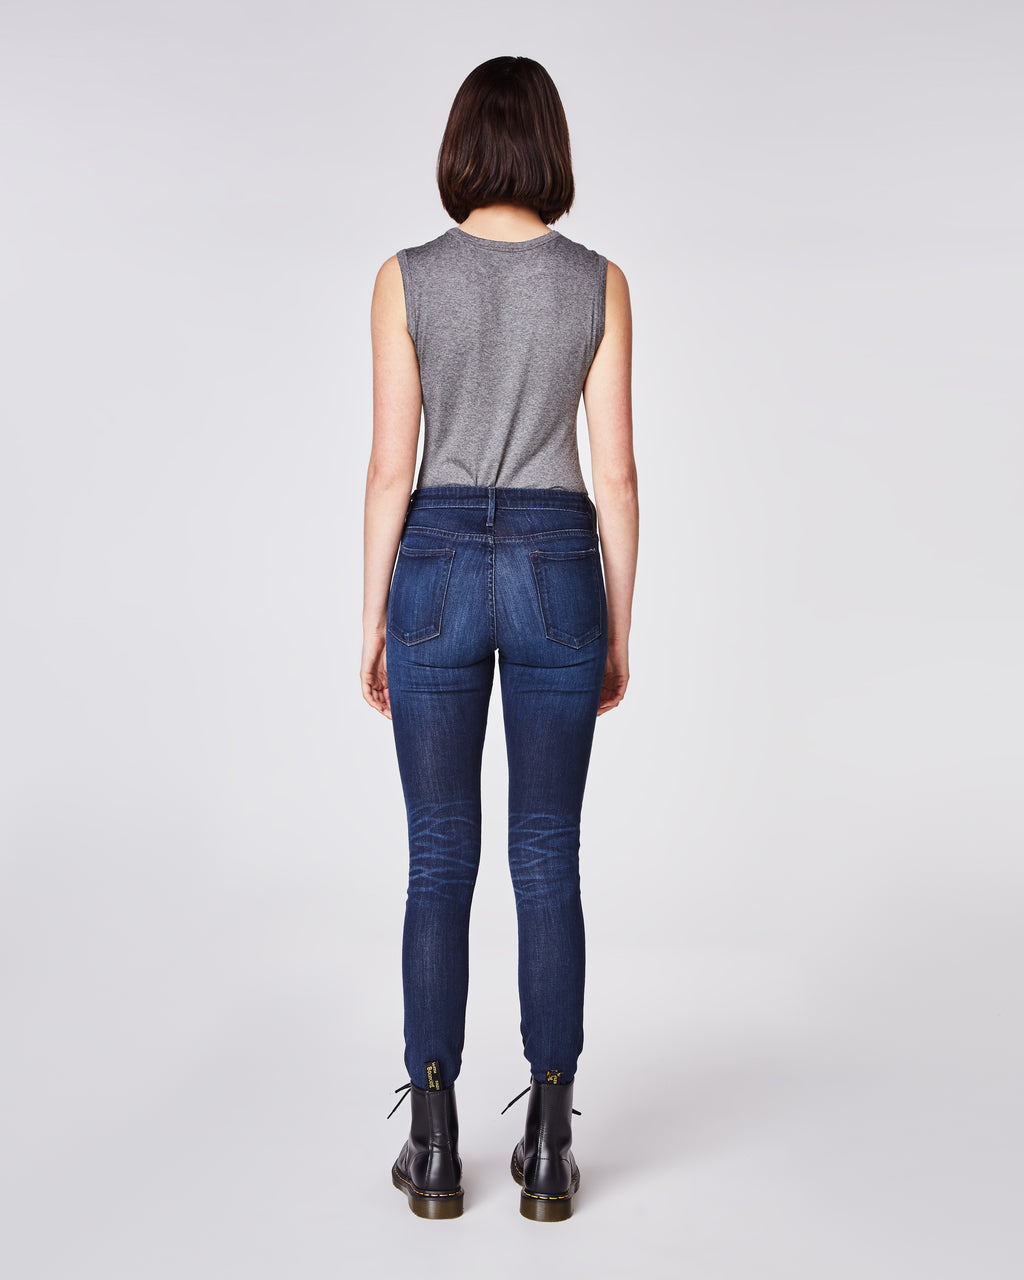 CF10254 - LEATHER AND DENIM JEAN - bottoms - denim - With full leather paneling on the front and denim on the back, these skinny jeans are perfect for day to night wear. Finished with a zipper and button for closure and unlined.